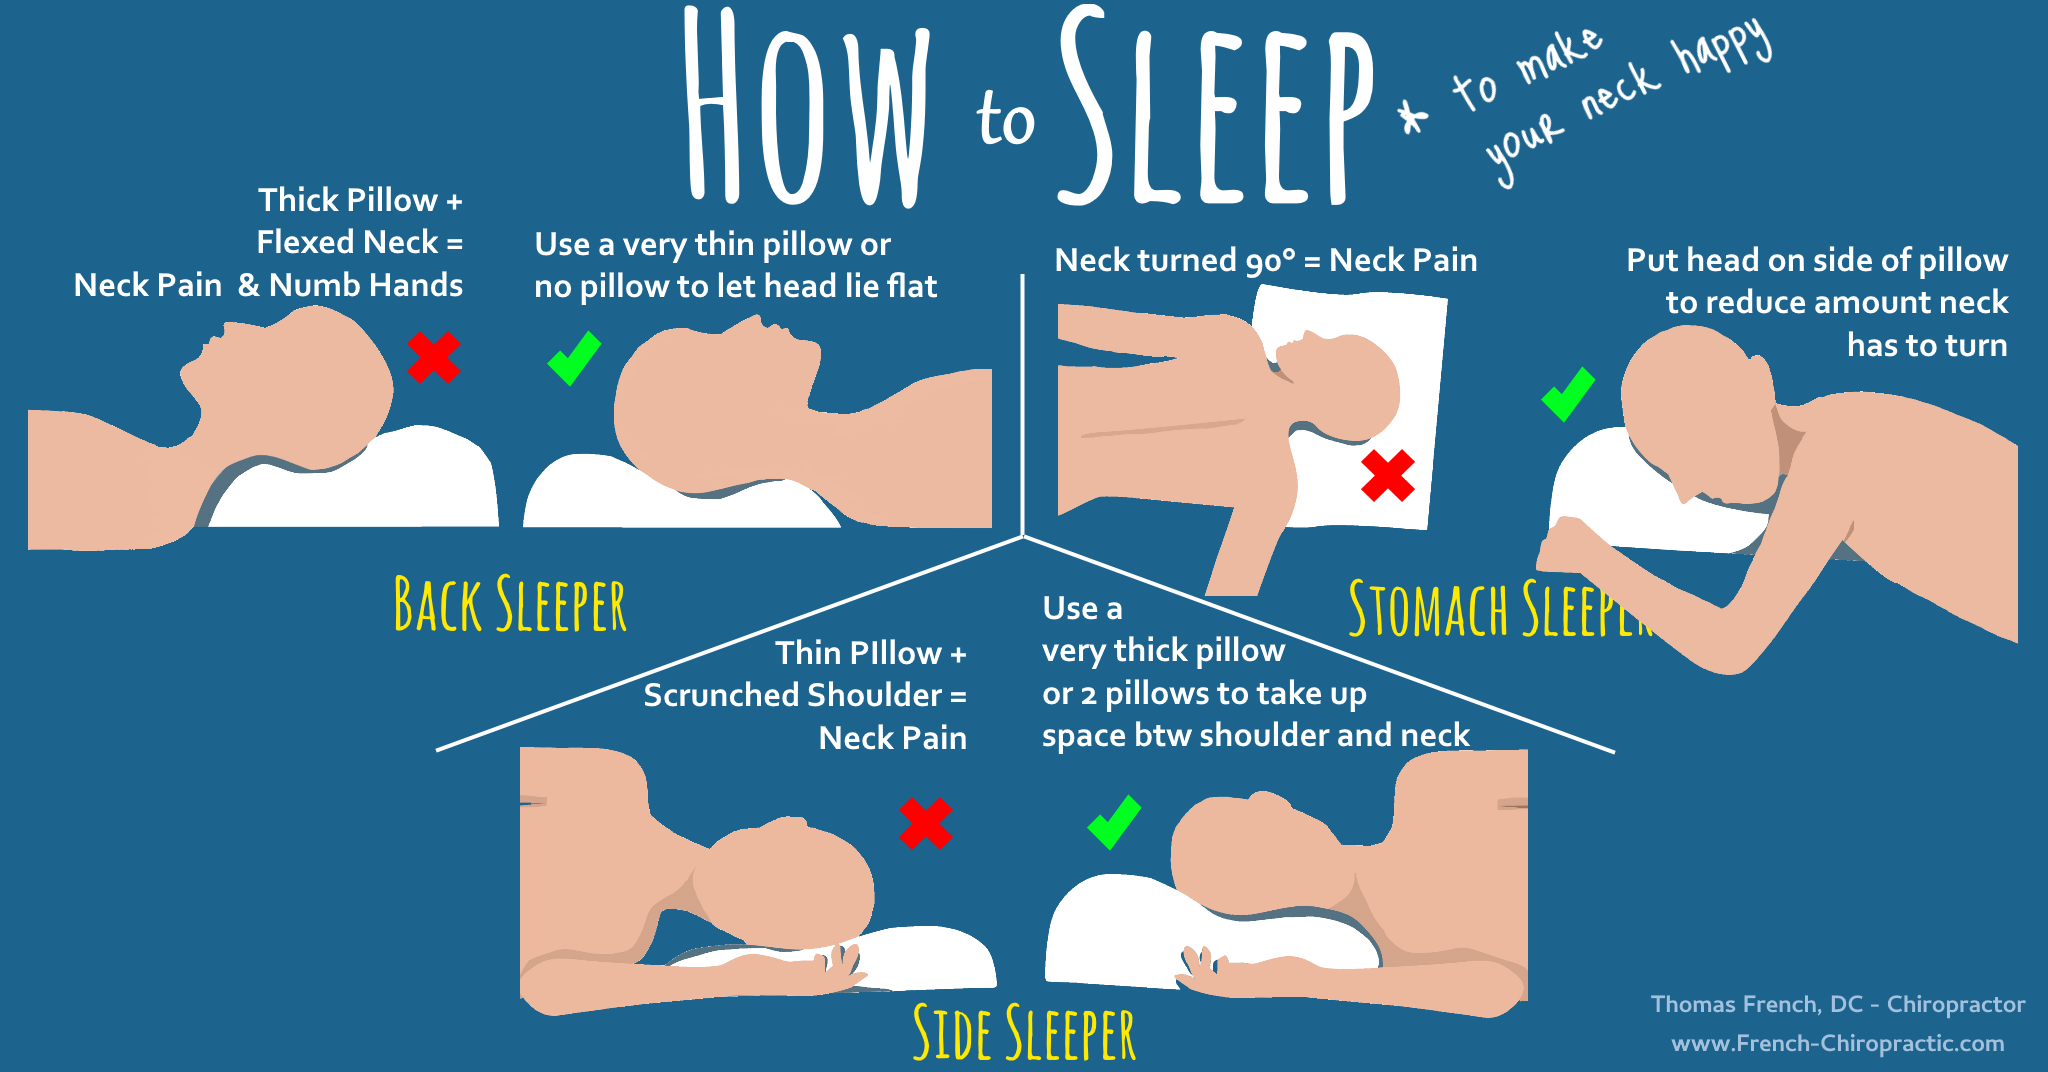 Infographic about How to sleep to reduce morning neck pain and hand numbness. Shows advice to use a thin pillow for back sleepers, a thick pillow for side sleepers, and to sleep on the edge of a pillow for stomach sleepers.